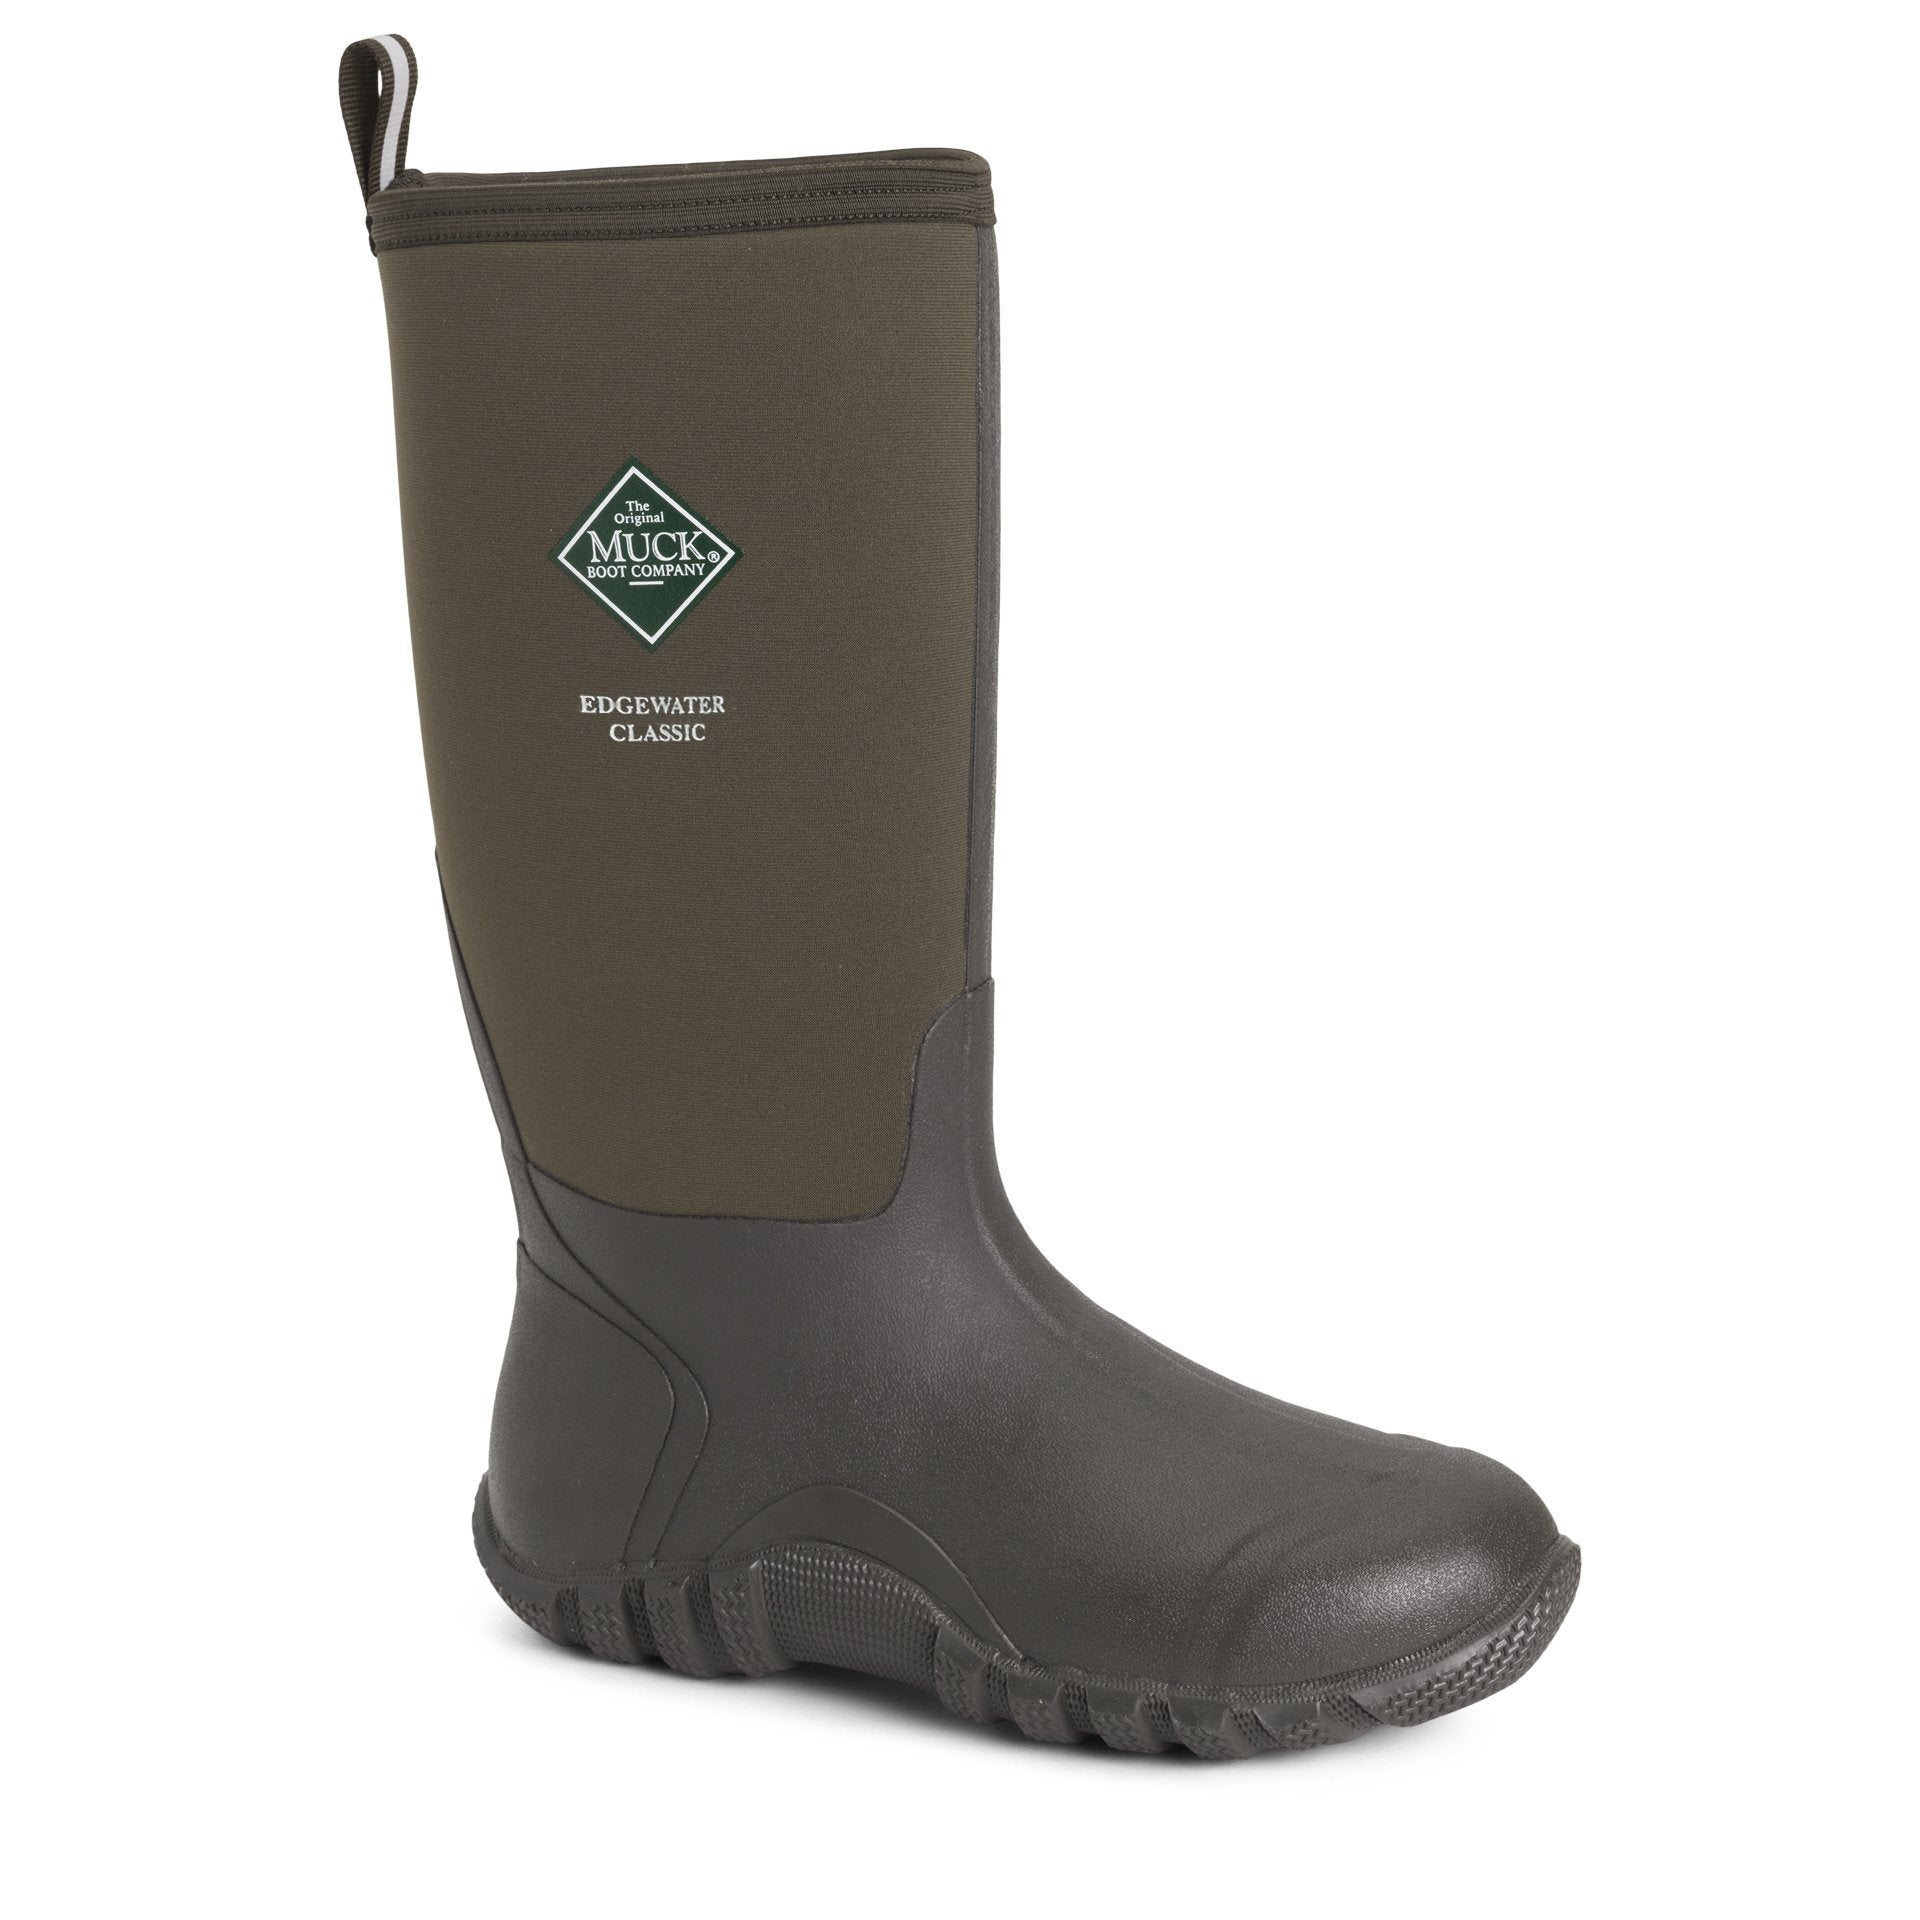 Muck Edgewater Classic Boots - Adult's